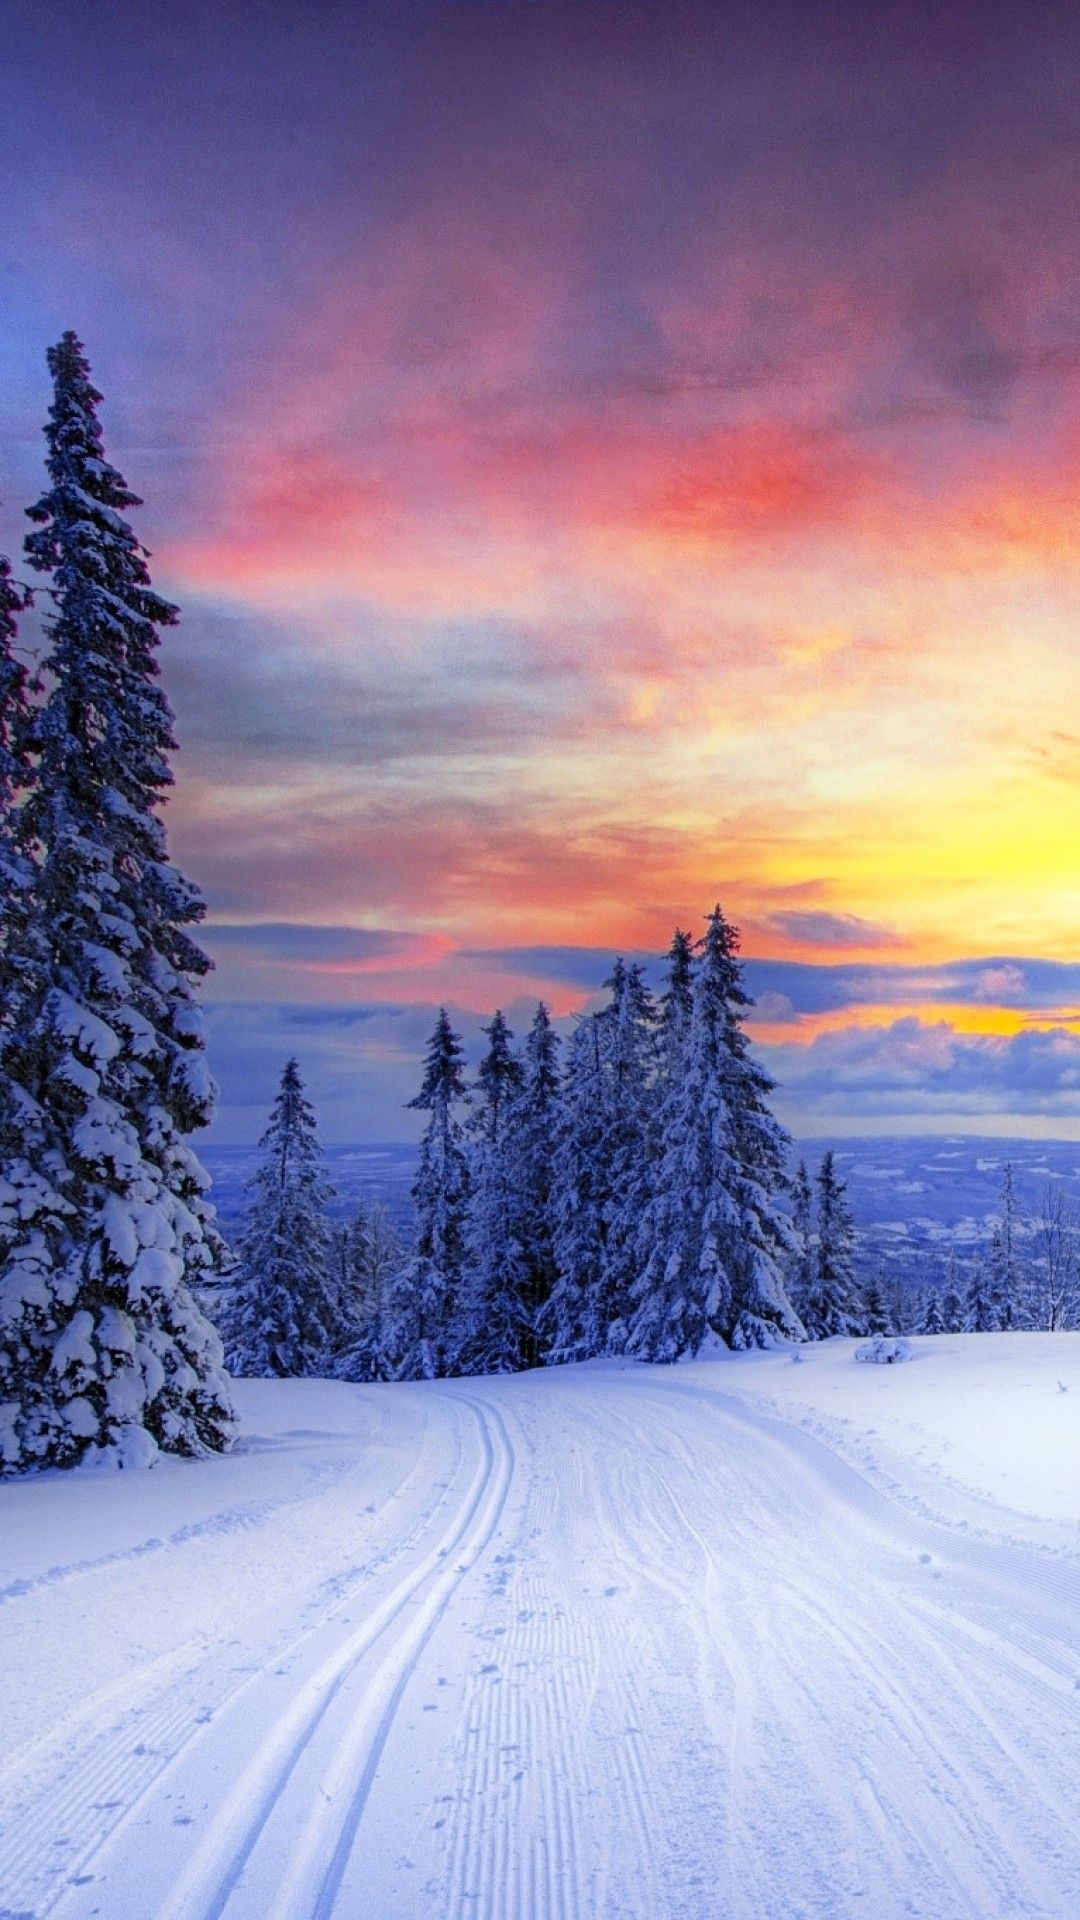 Winter Wallpaper For Iphone 86 Images Pertaining To Winter Wallpaper For Iphone Winter Wallpaper Winter Scenery Winter Landscape